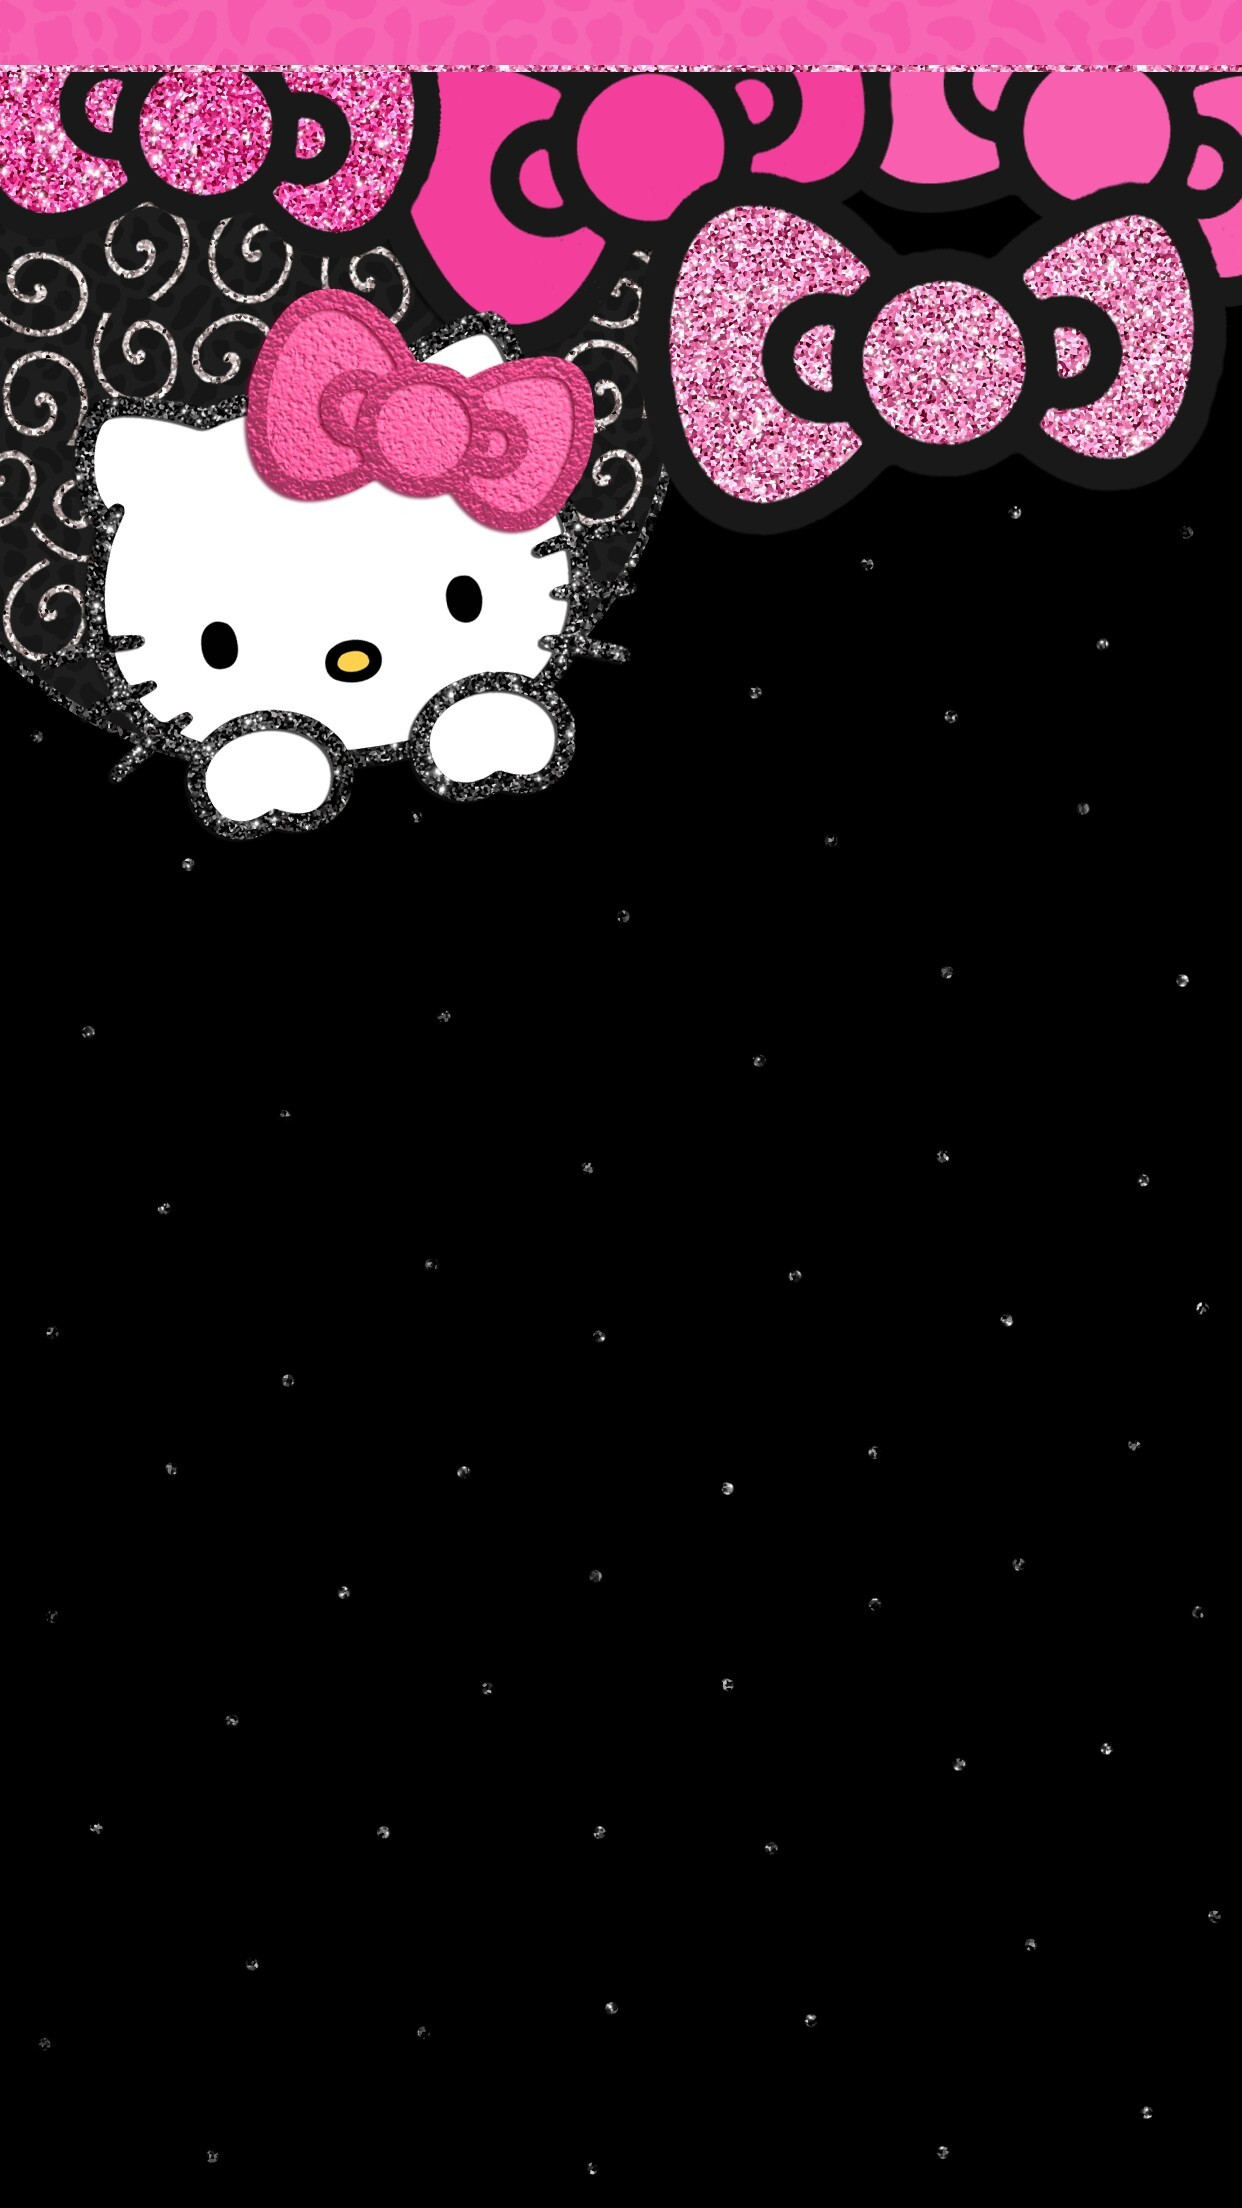 Cute Zig Zag Wallpapers Hello Kitty Wallpaper For Iphone 72 Images